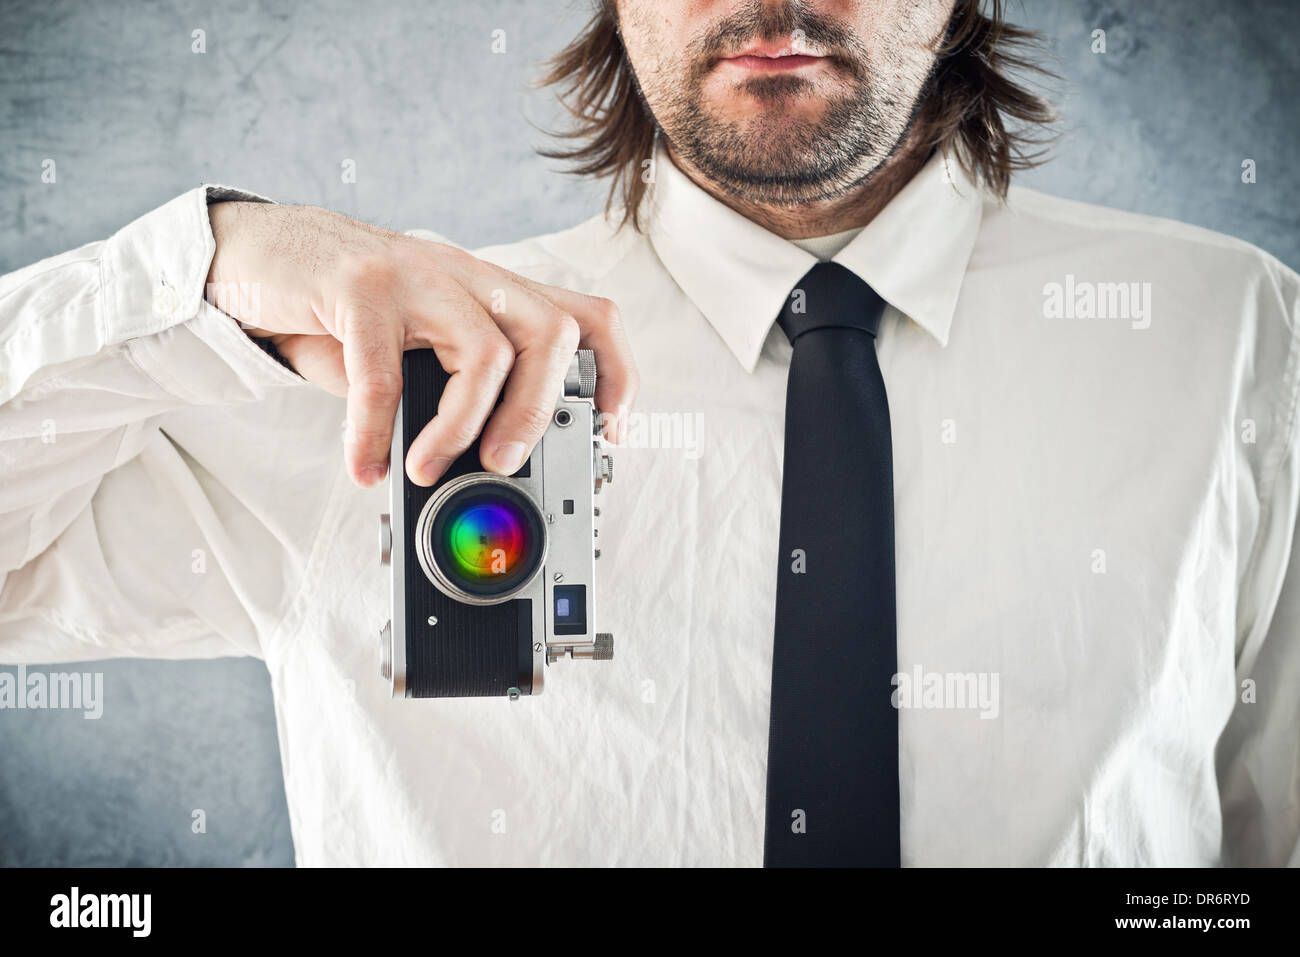 Businessman taking picture with retro style photo camera - Stock Image